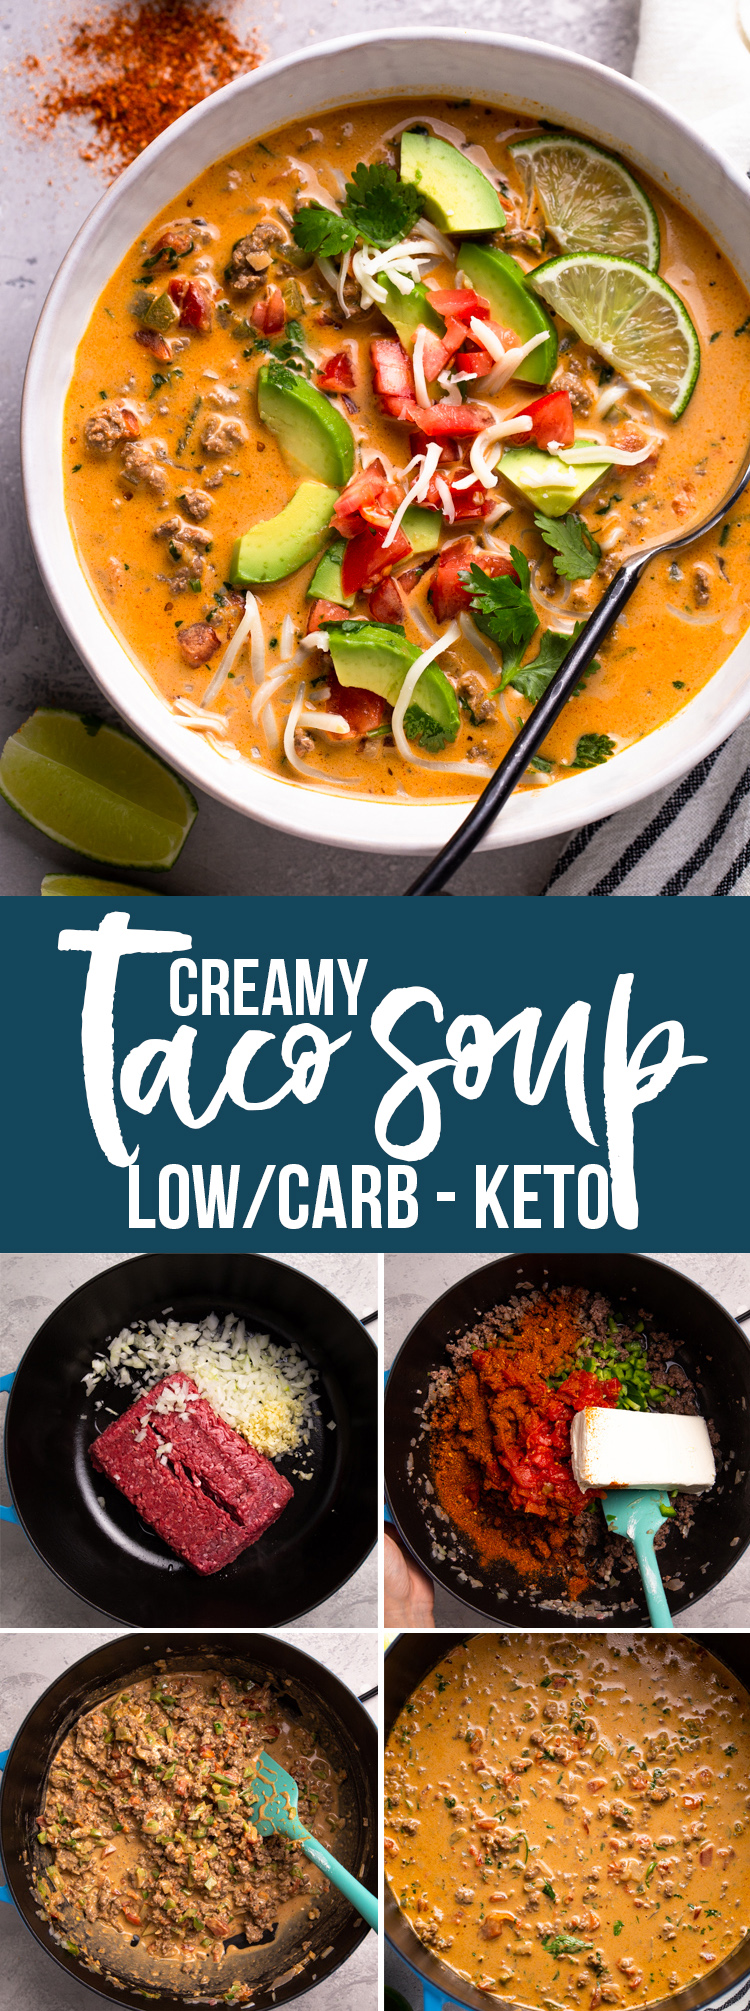 Creamy Taco Soup (Low Carb/Keto)